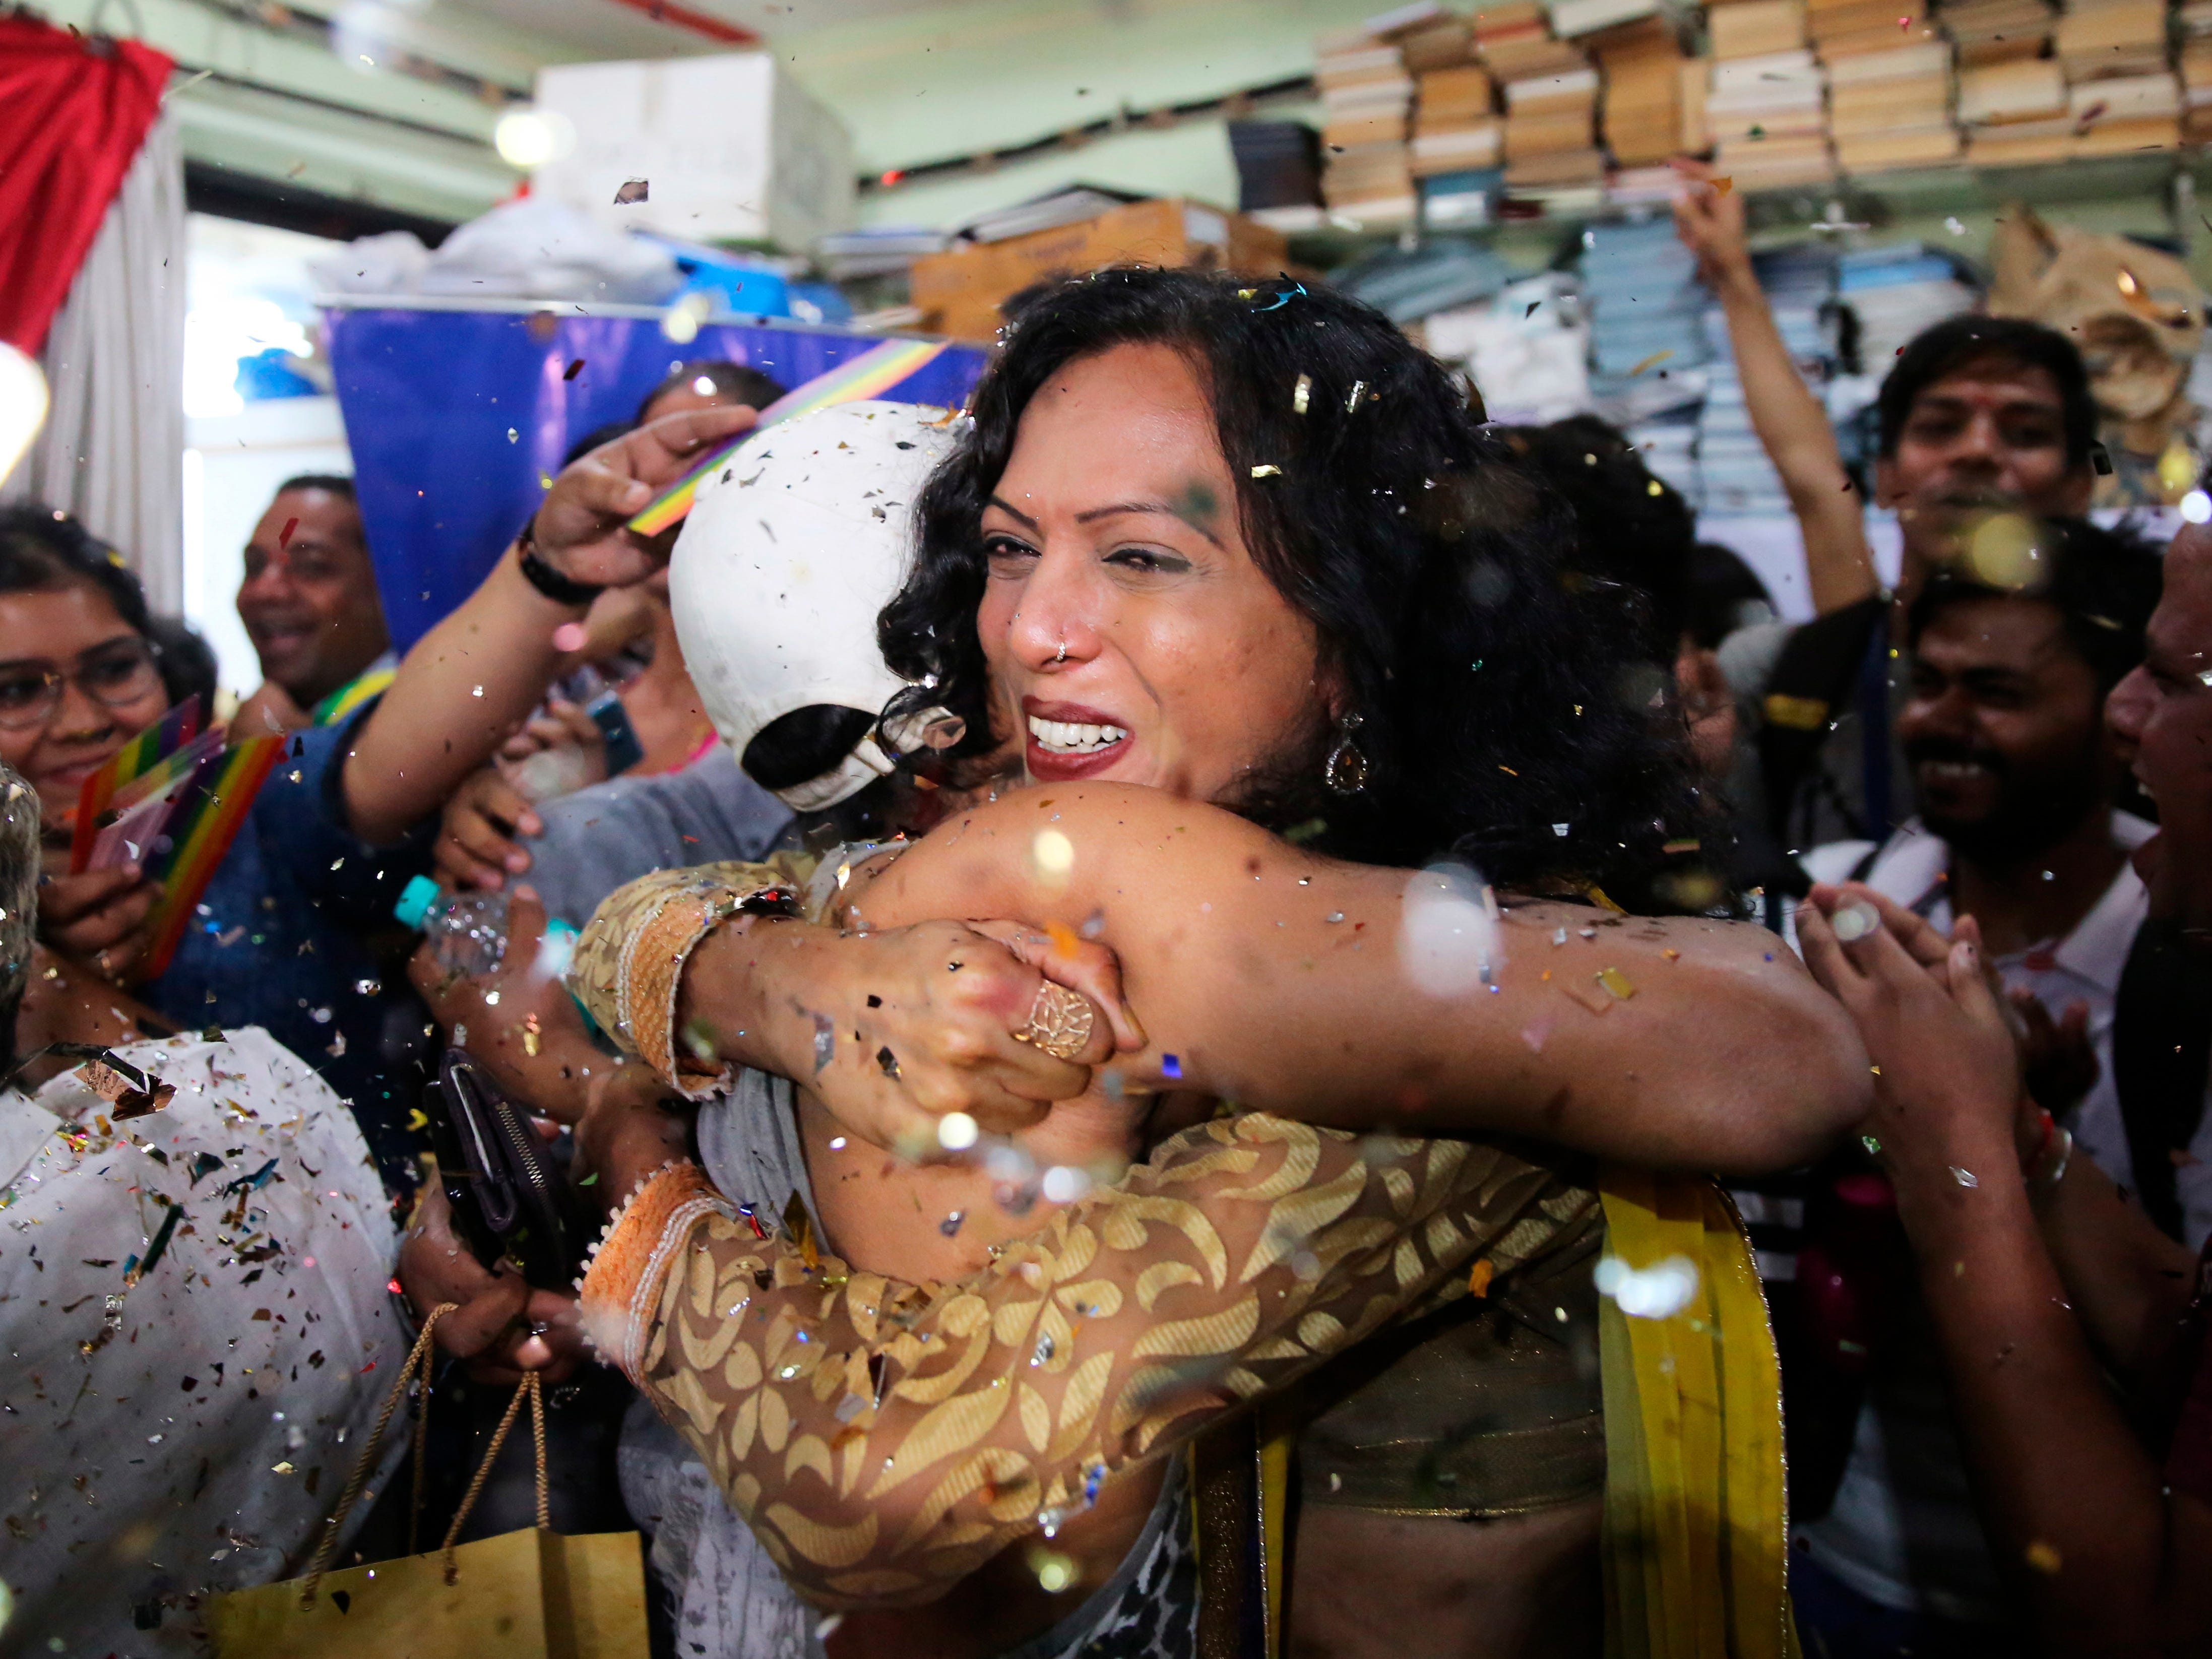 Supporters and members of the LGBT community celebrate after the country's top court struck down a colonial-era law that makes homosexual acts punishable by up to 10 years in prison, in Mumbai, India, Sept. 6, 2018.